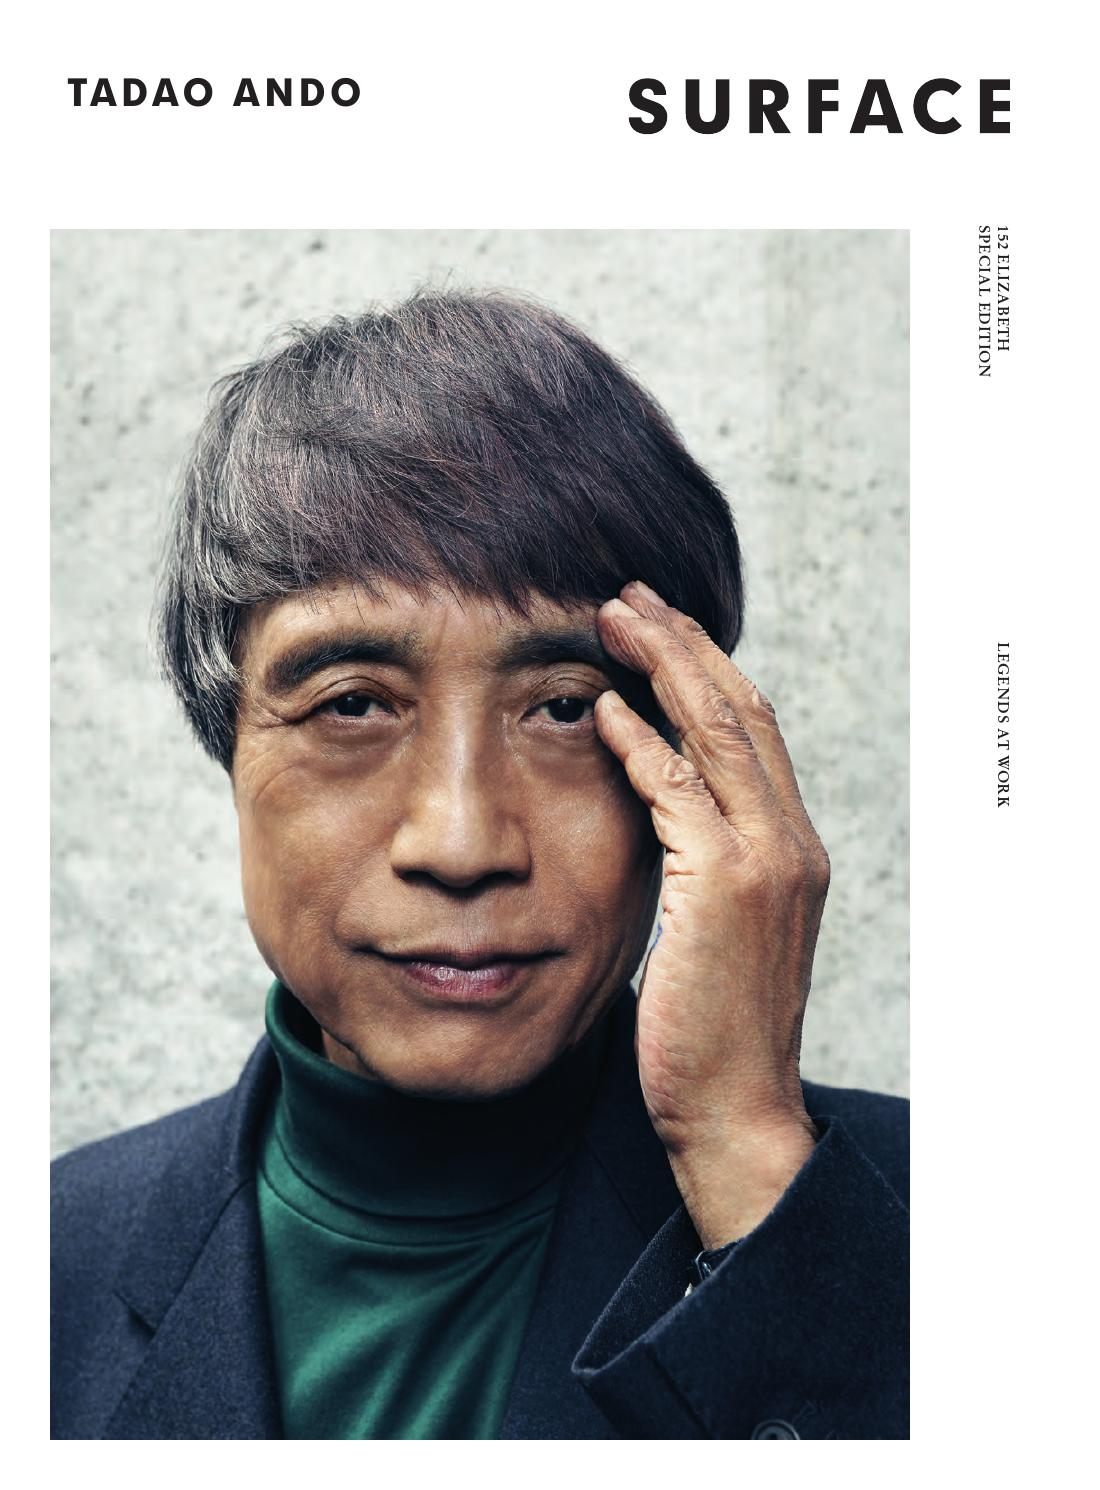 Surface Tadao Ando February 2015 By Surfacemag Issuu Andrew Smith Grey Formal Trousers Abu 34